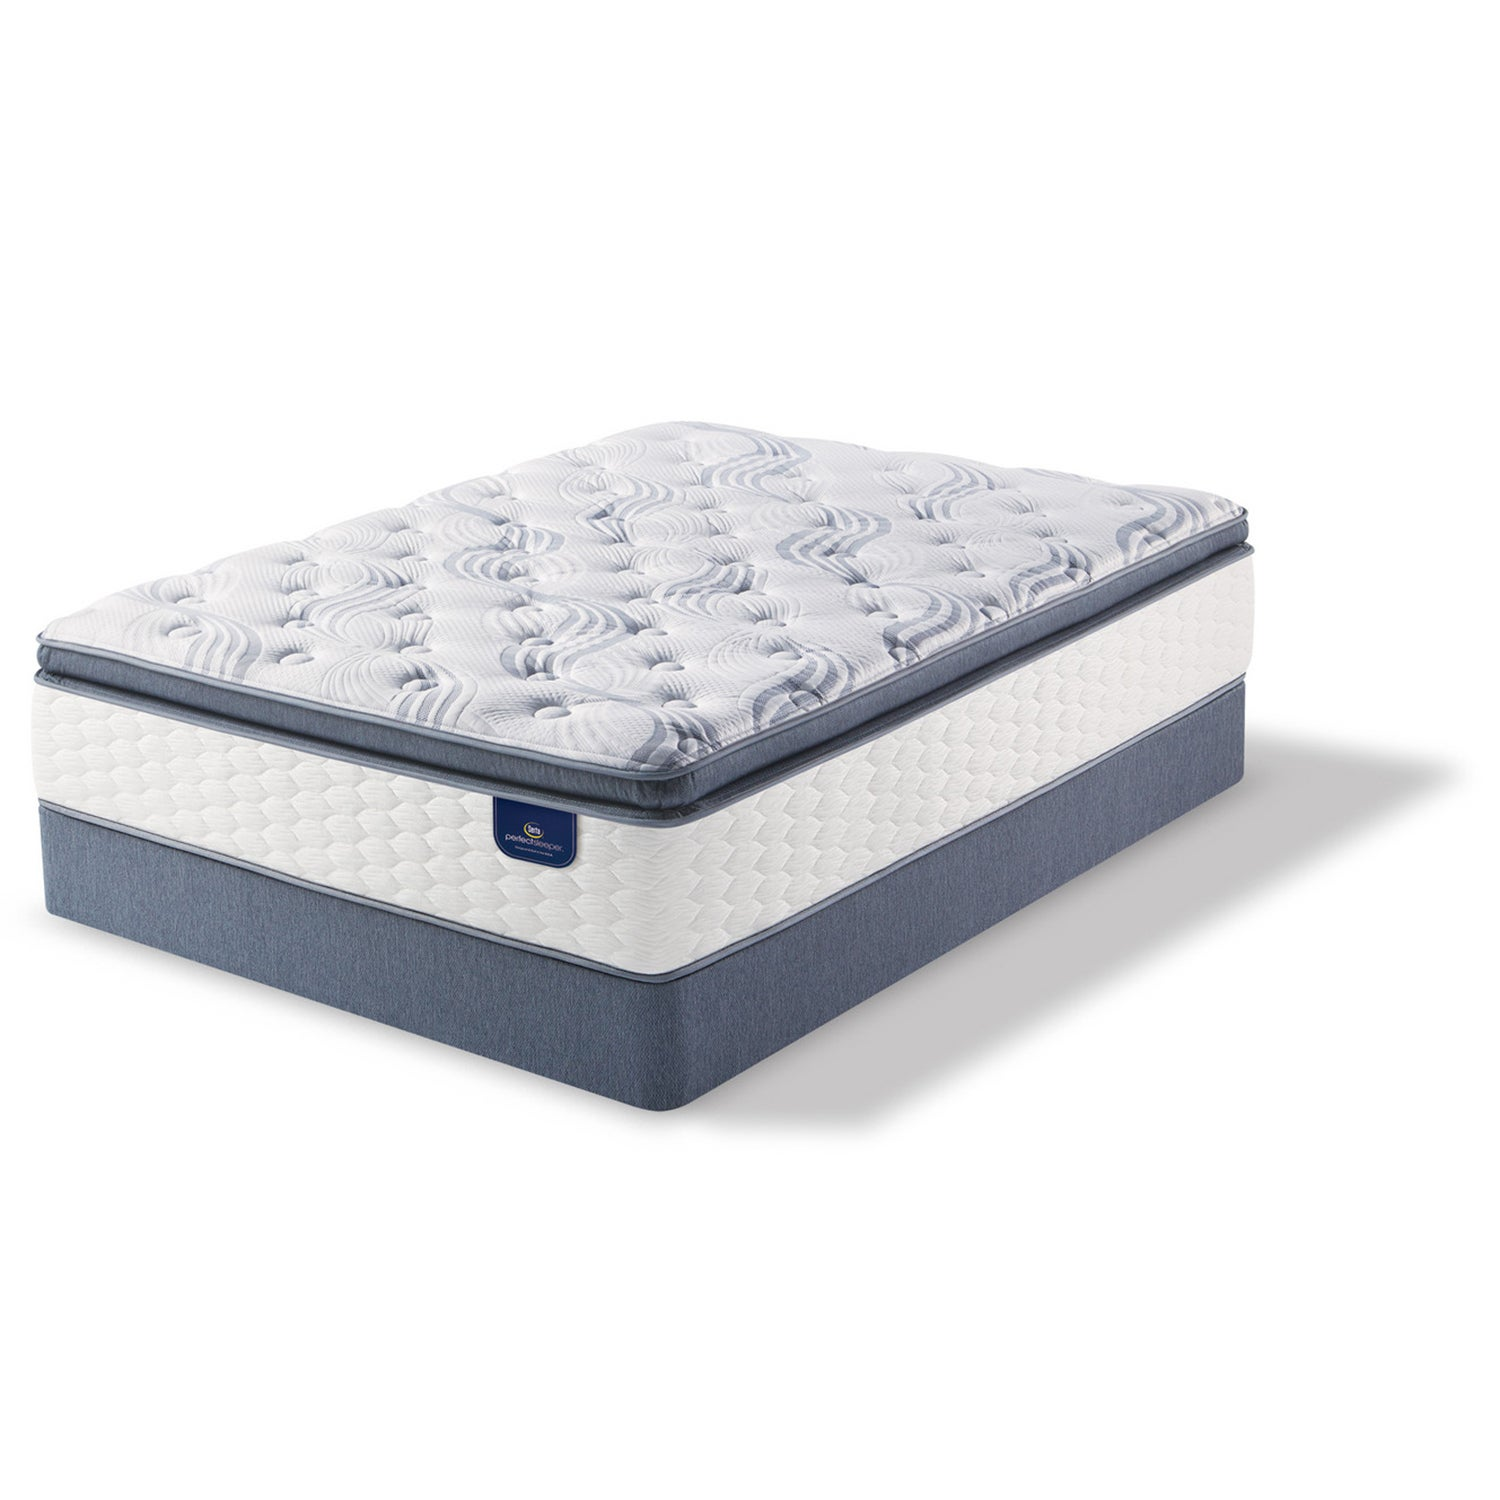 johnlewis mattress main superb buyhypnos online topper firm pillow com rsp pocket double at pdp top spring hypnos